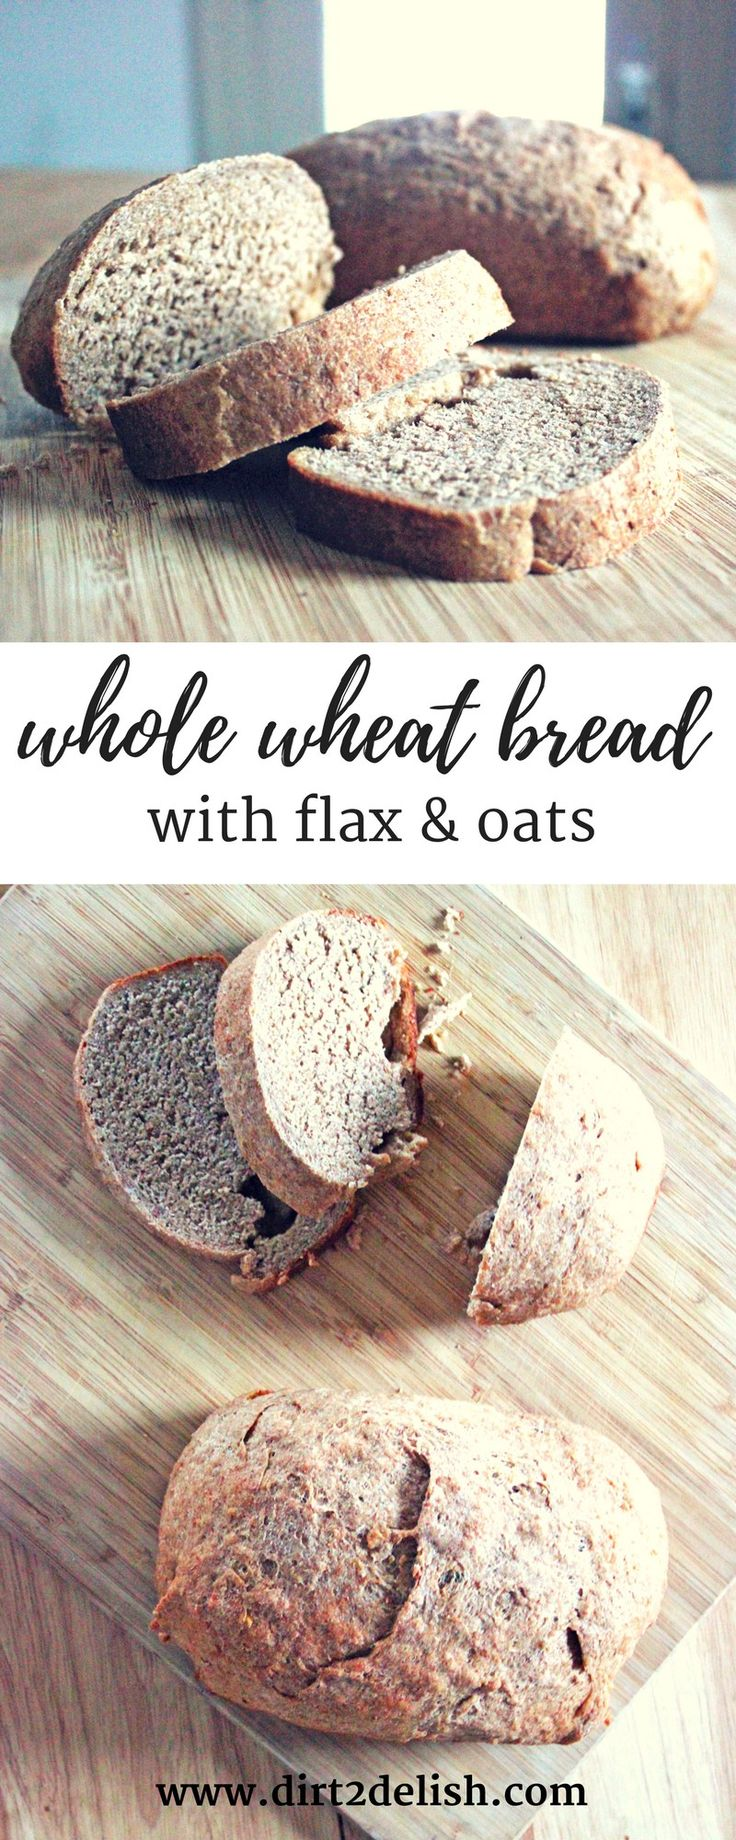 Whole Wheat Bread with Flax and Oats | A hearty whole wheat bread amped up with flax and oats, this recipe is a healthier version of a homemade classic with an extra nutritional punch.